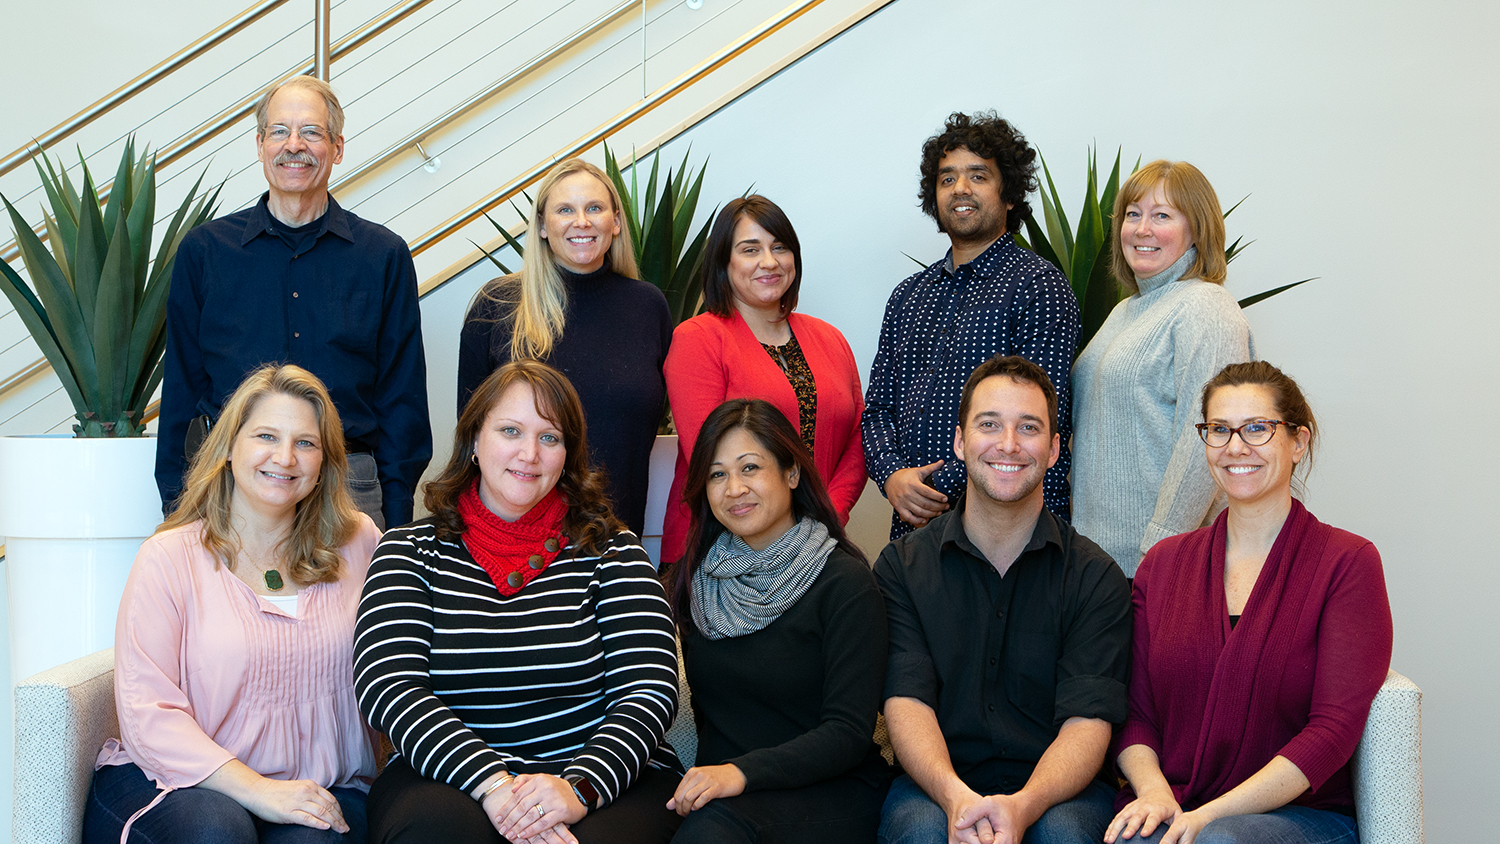 The spring 2019 OCIP team The spring 2019 OCIP team. Front row, left to right: Rebecca Sanchez, Bethany Smith, Arlene Mendoza-Moran, Christopher Beeson and Bethanne Tobey. Back row, left to right: Peter Hessling, Julianne Treme, Melissa Ramirez, Muntazar Monsur and Christine Cranford. Pictured in the lobby of CTI. The front row is sitting on a couch and the back row is standing behind them.